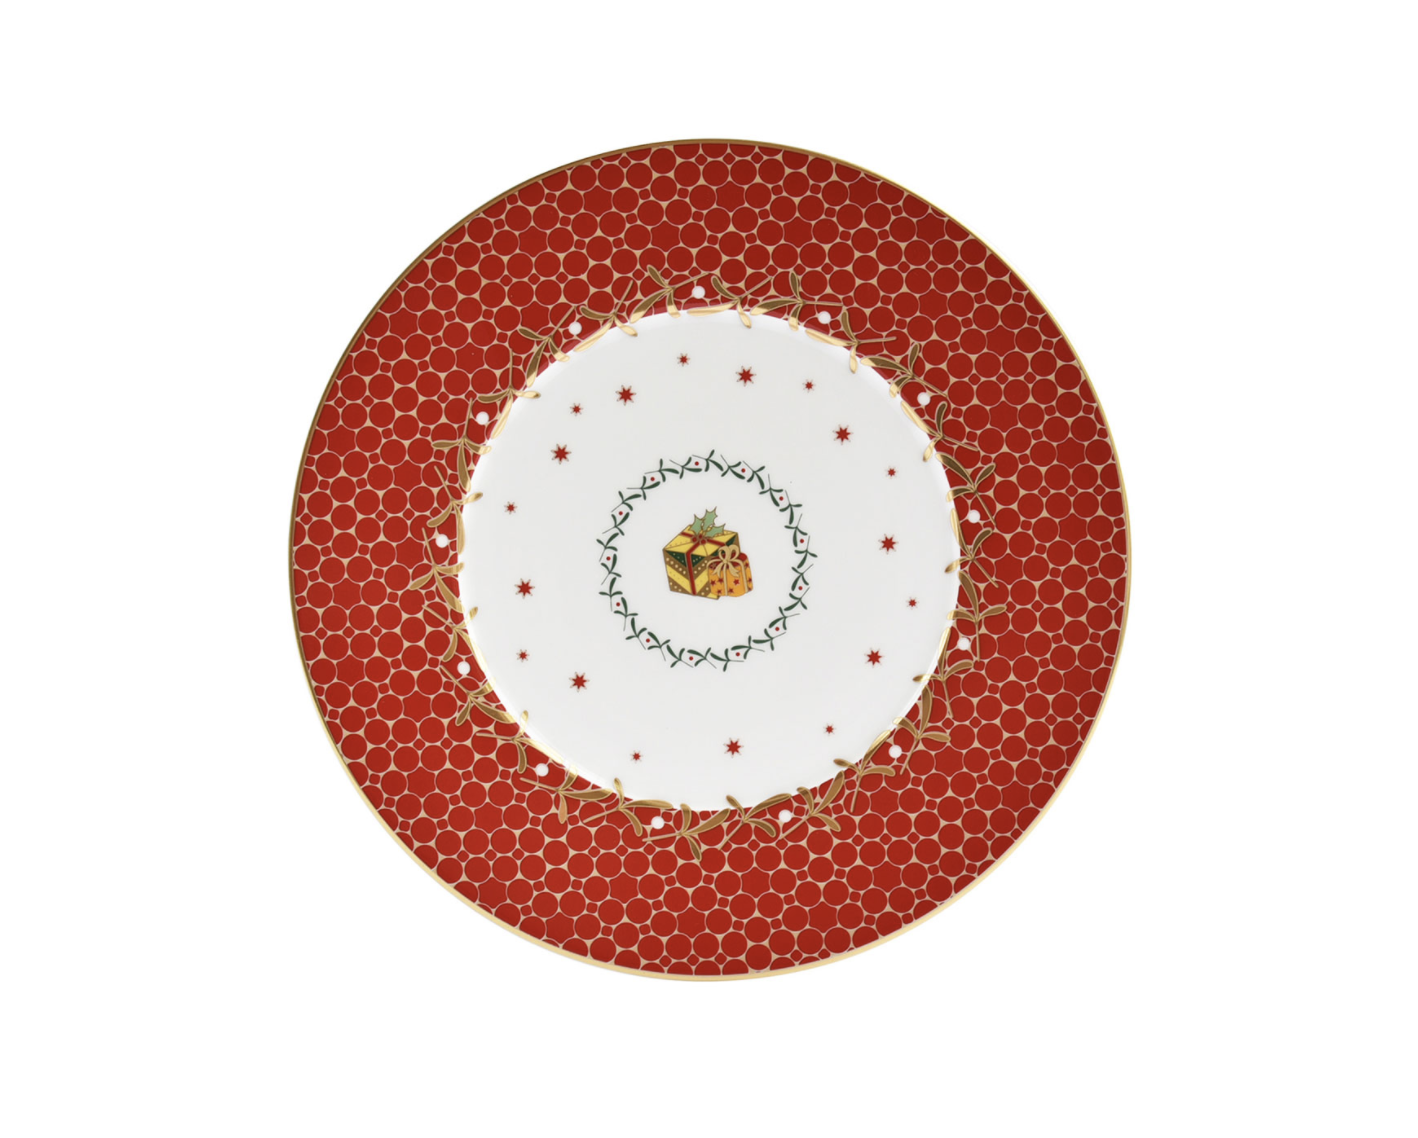 Complementary Holiday China for the Most Classic Patterns